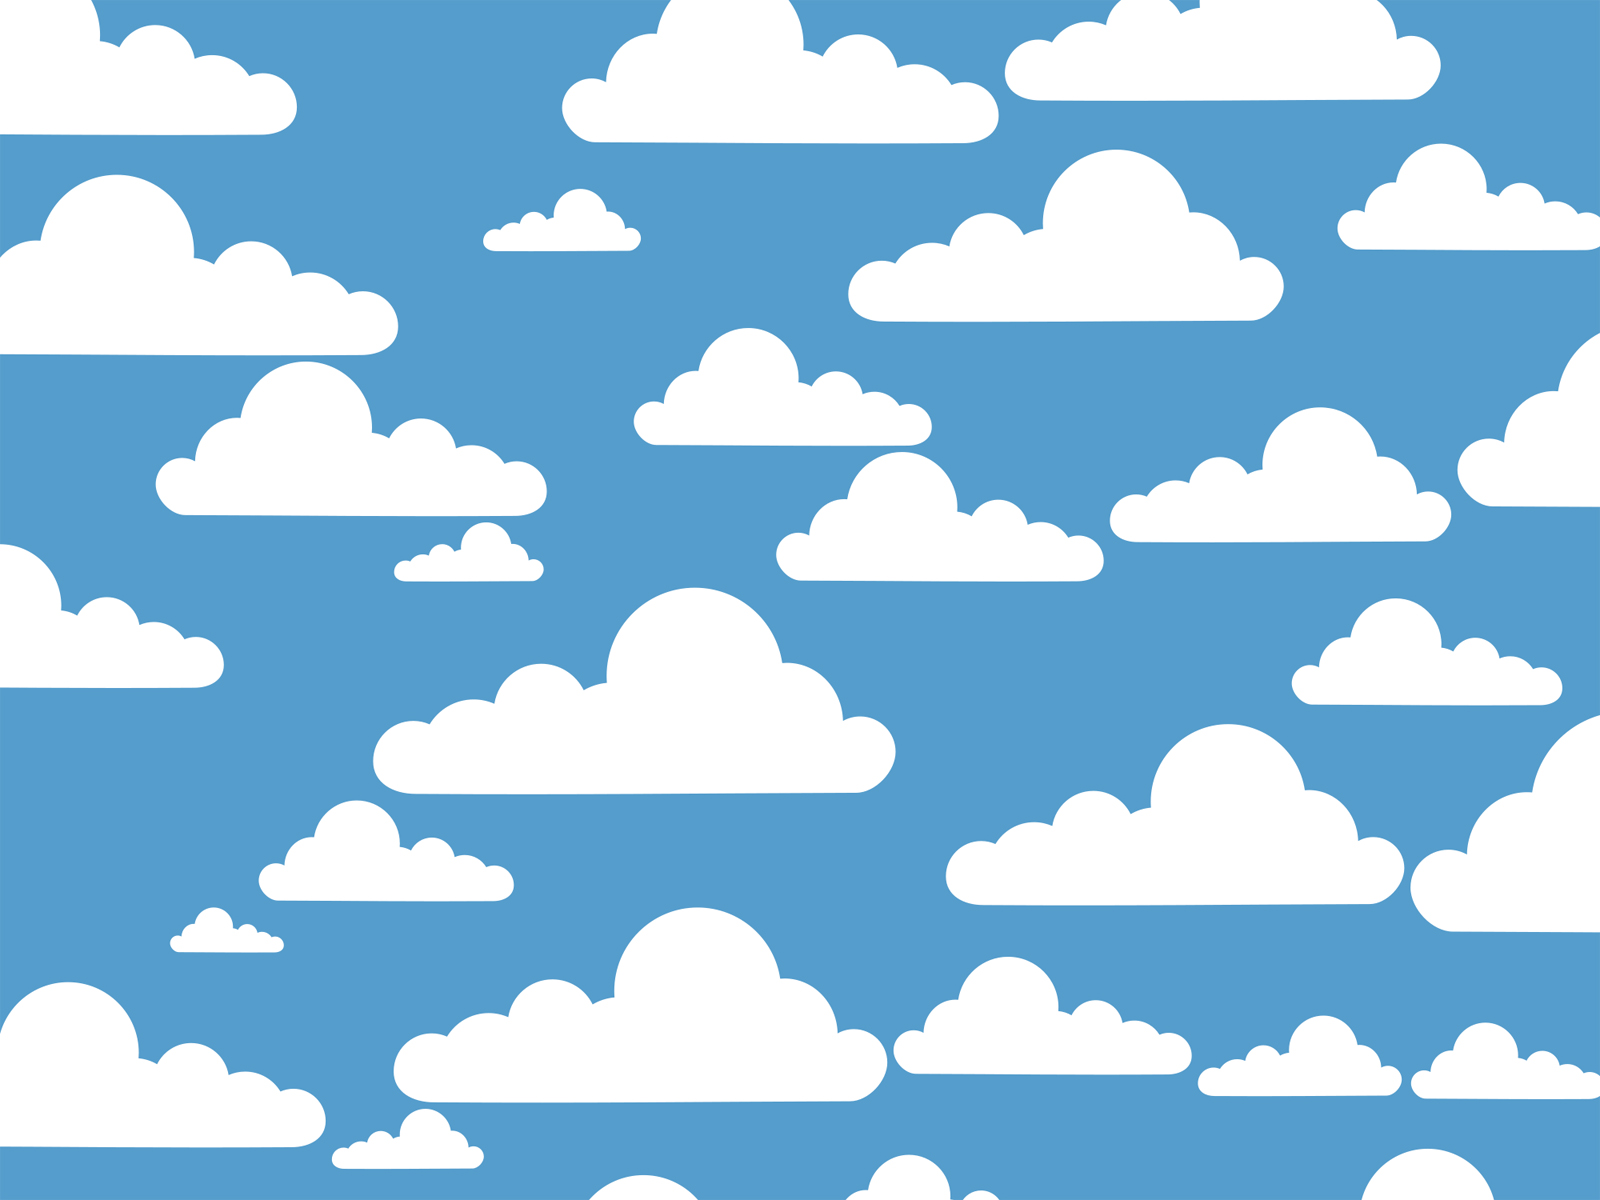 Simple Clouds Powerpoint Templates